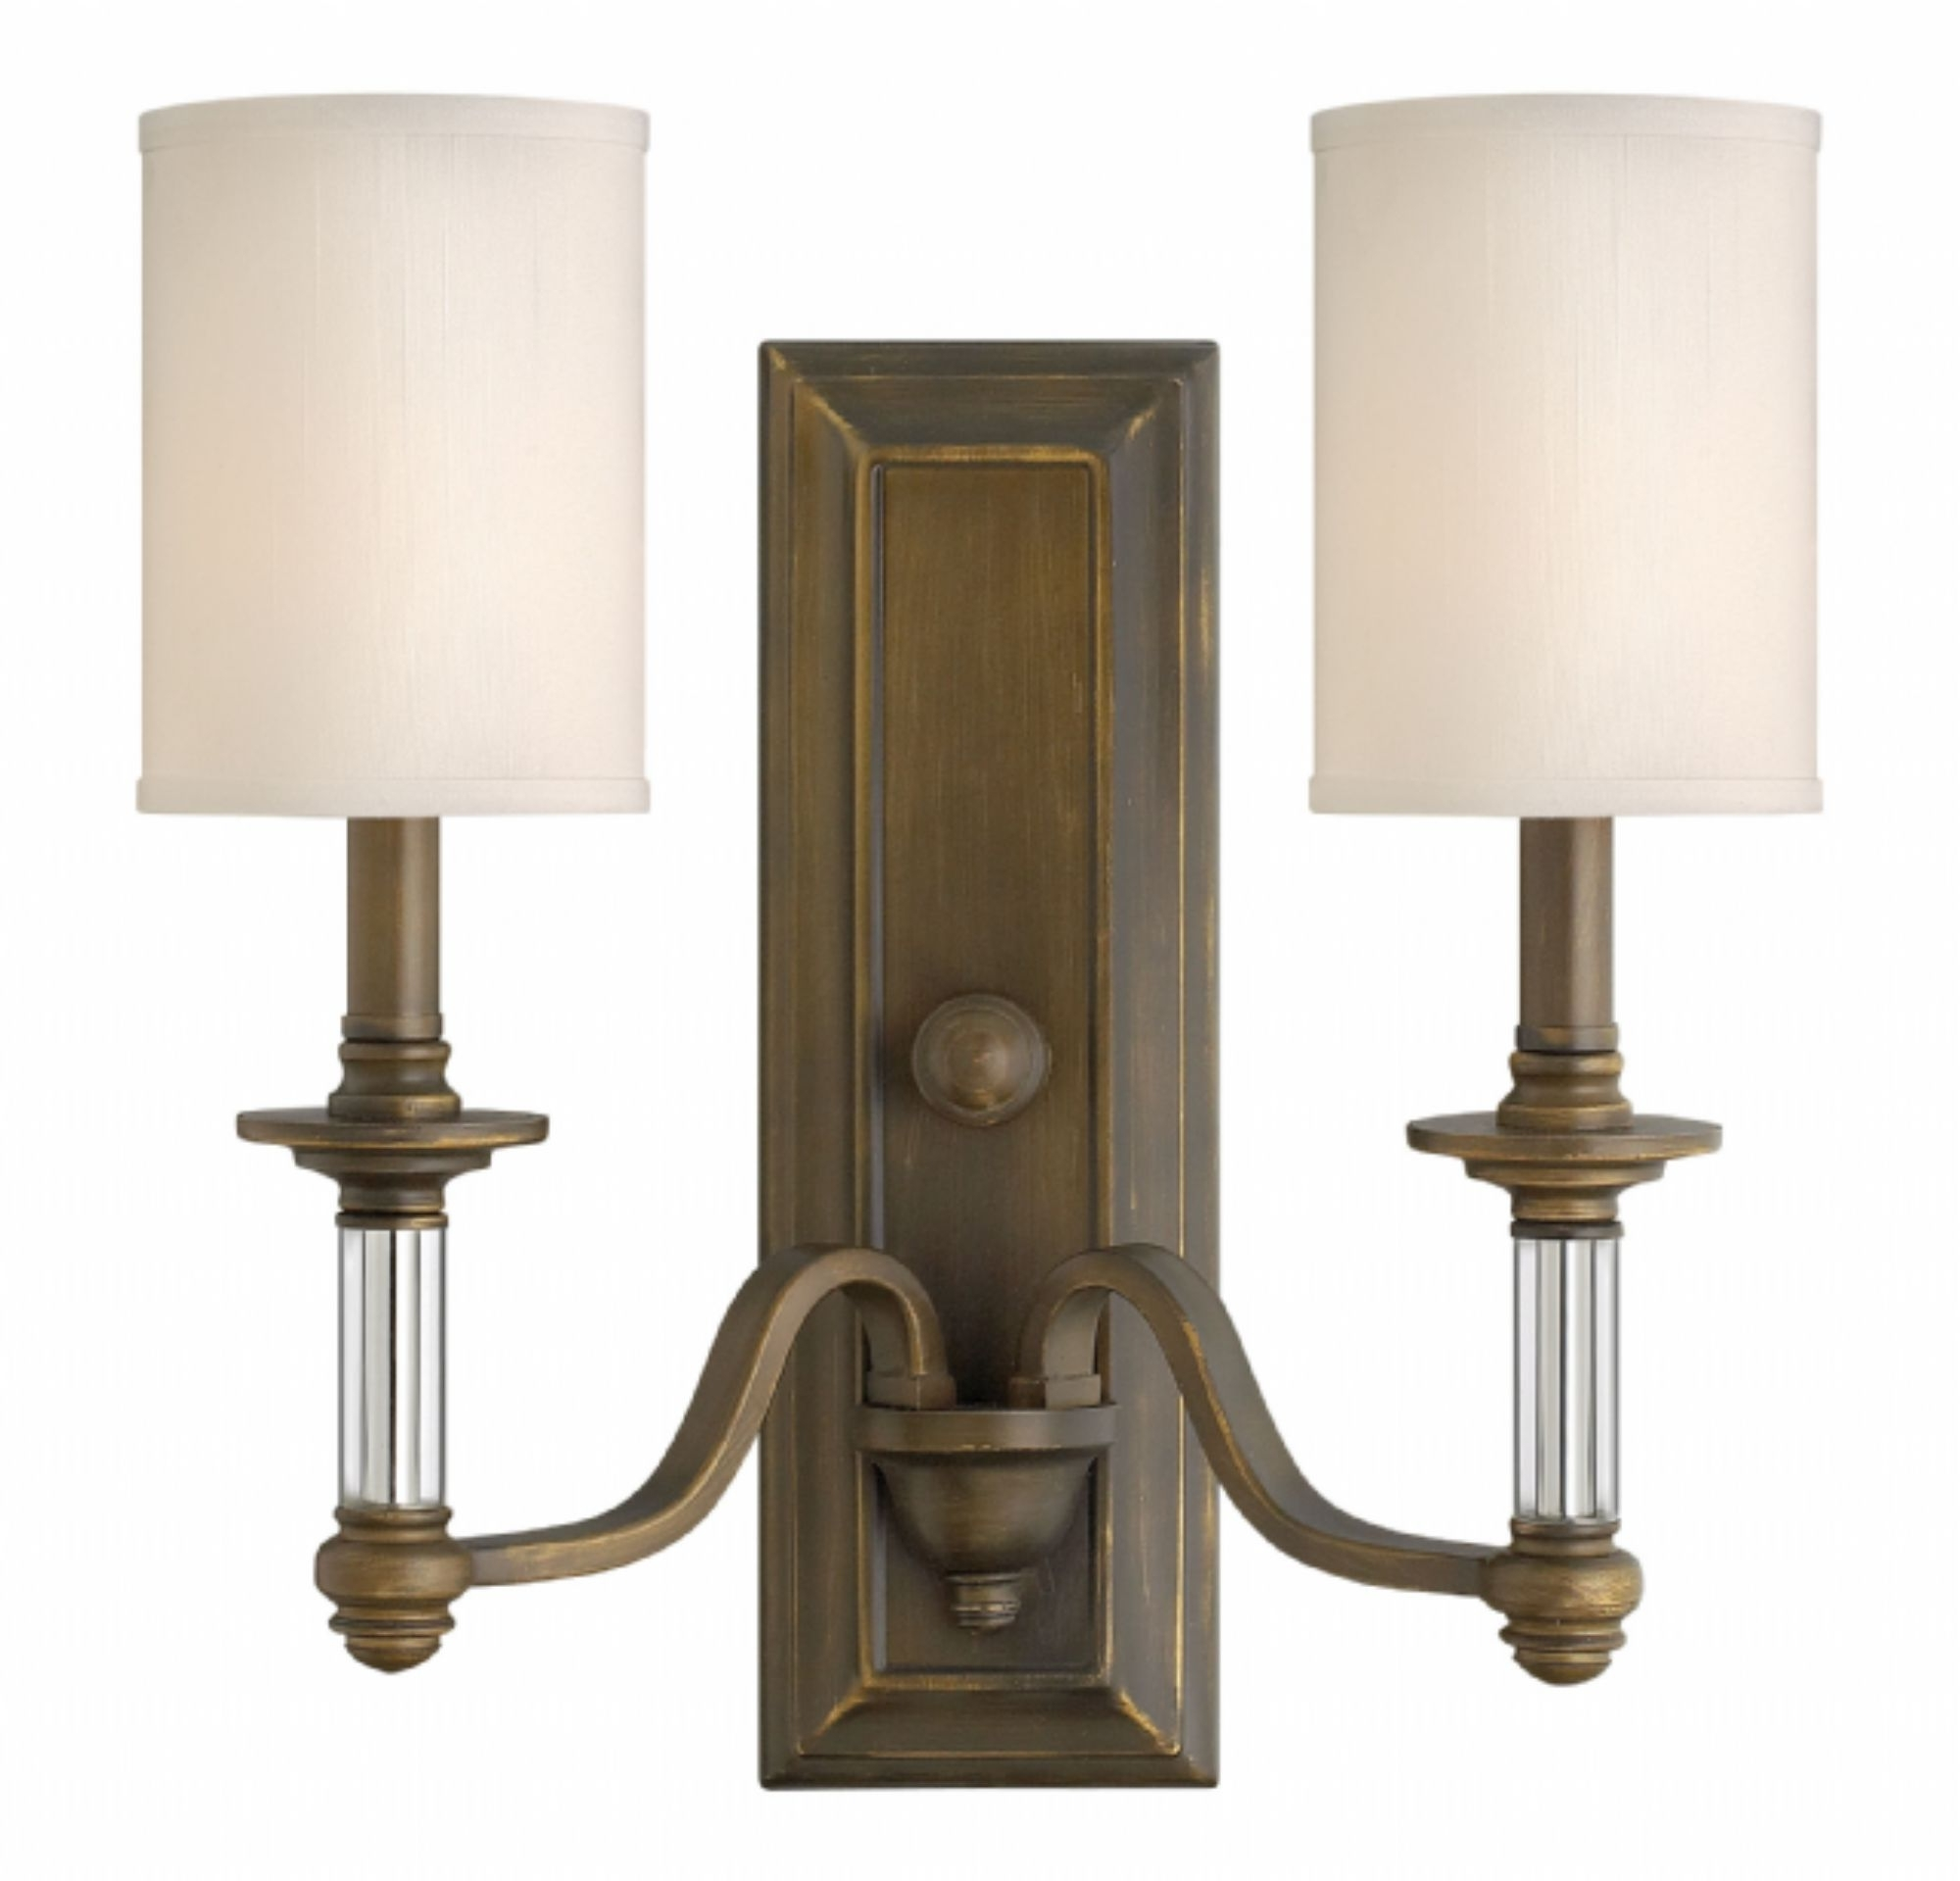 English Bronze Sussex > Interior Wall Mount Throughout Most Popular Double Wall Mount Hinkley Lighting (Gallery 3 of 20)